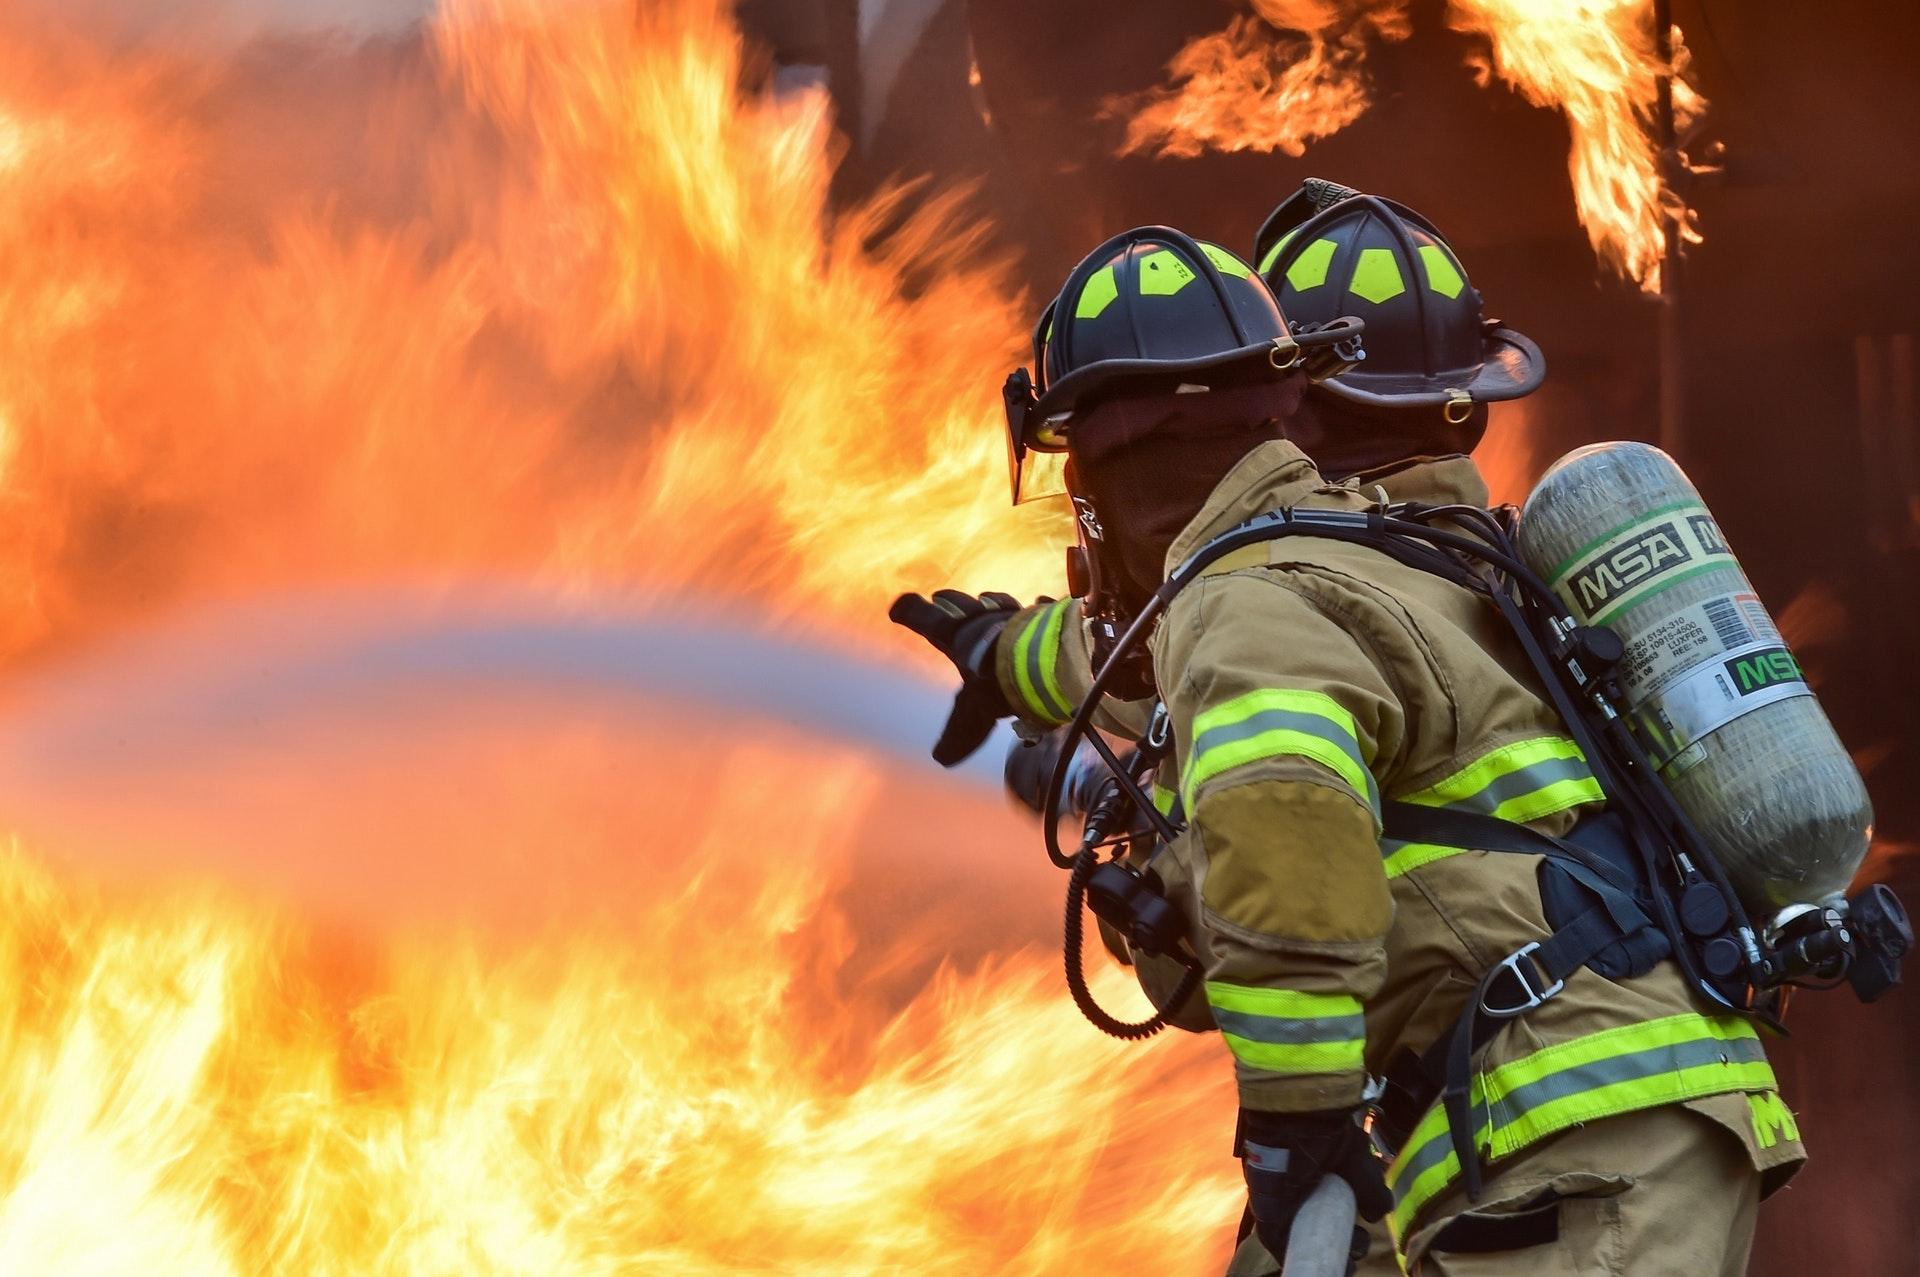 House Fire Data and Prevention